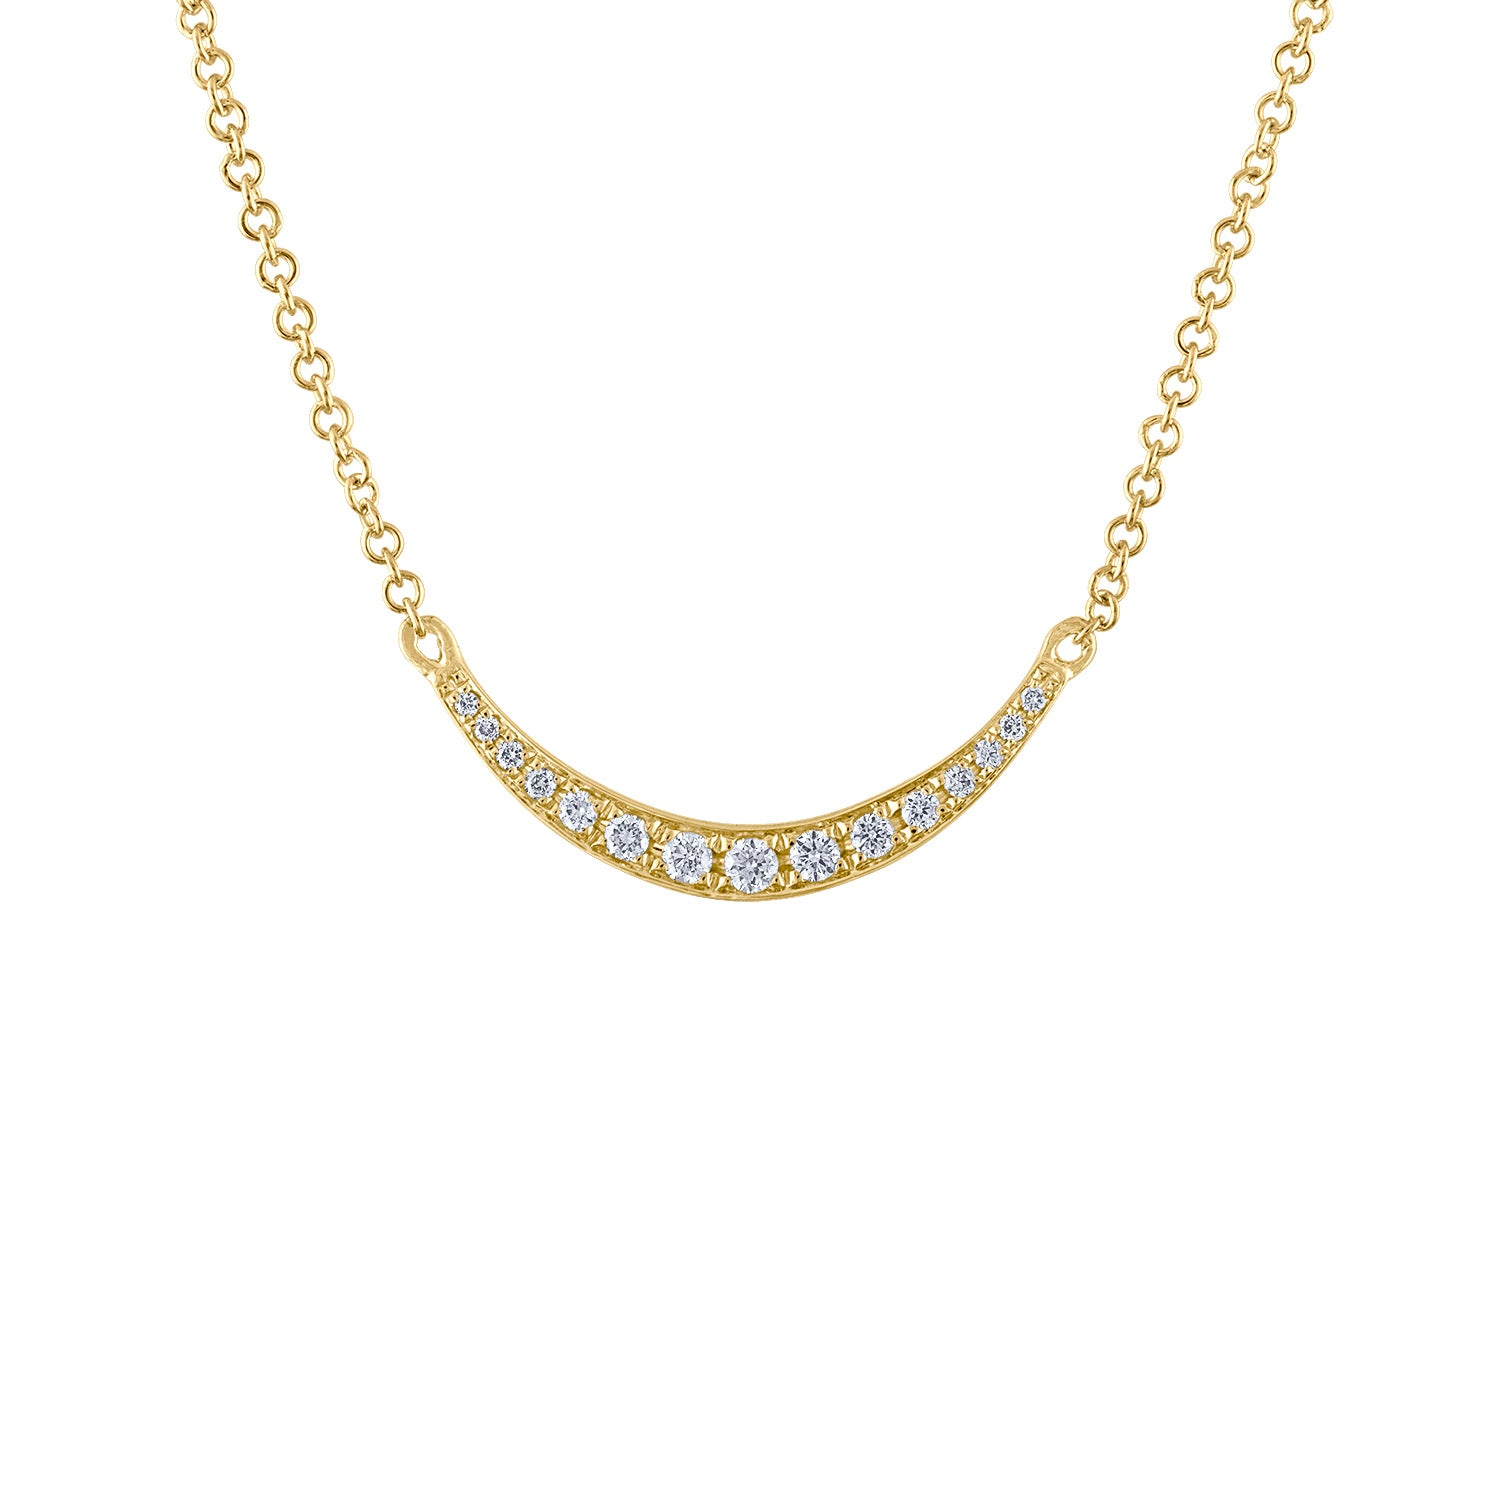 14KT GOLD DIAMOND HORIZONTAL CRESCENT MOON NECKLACE